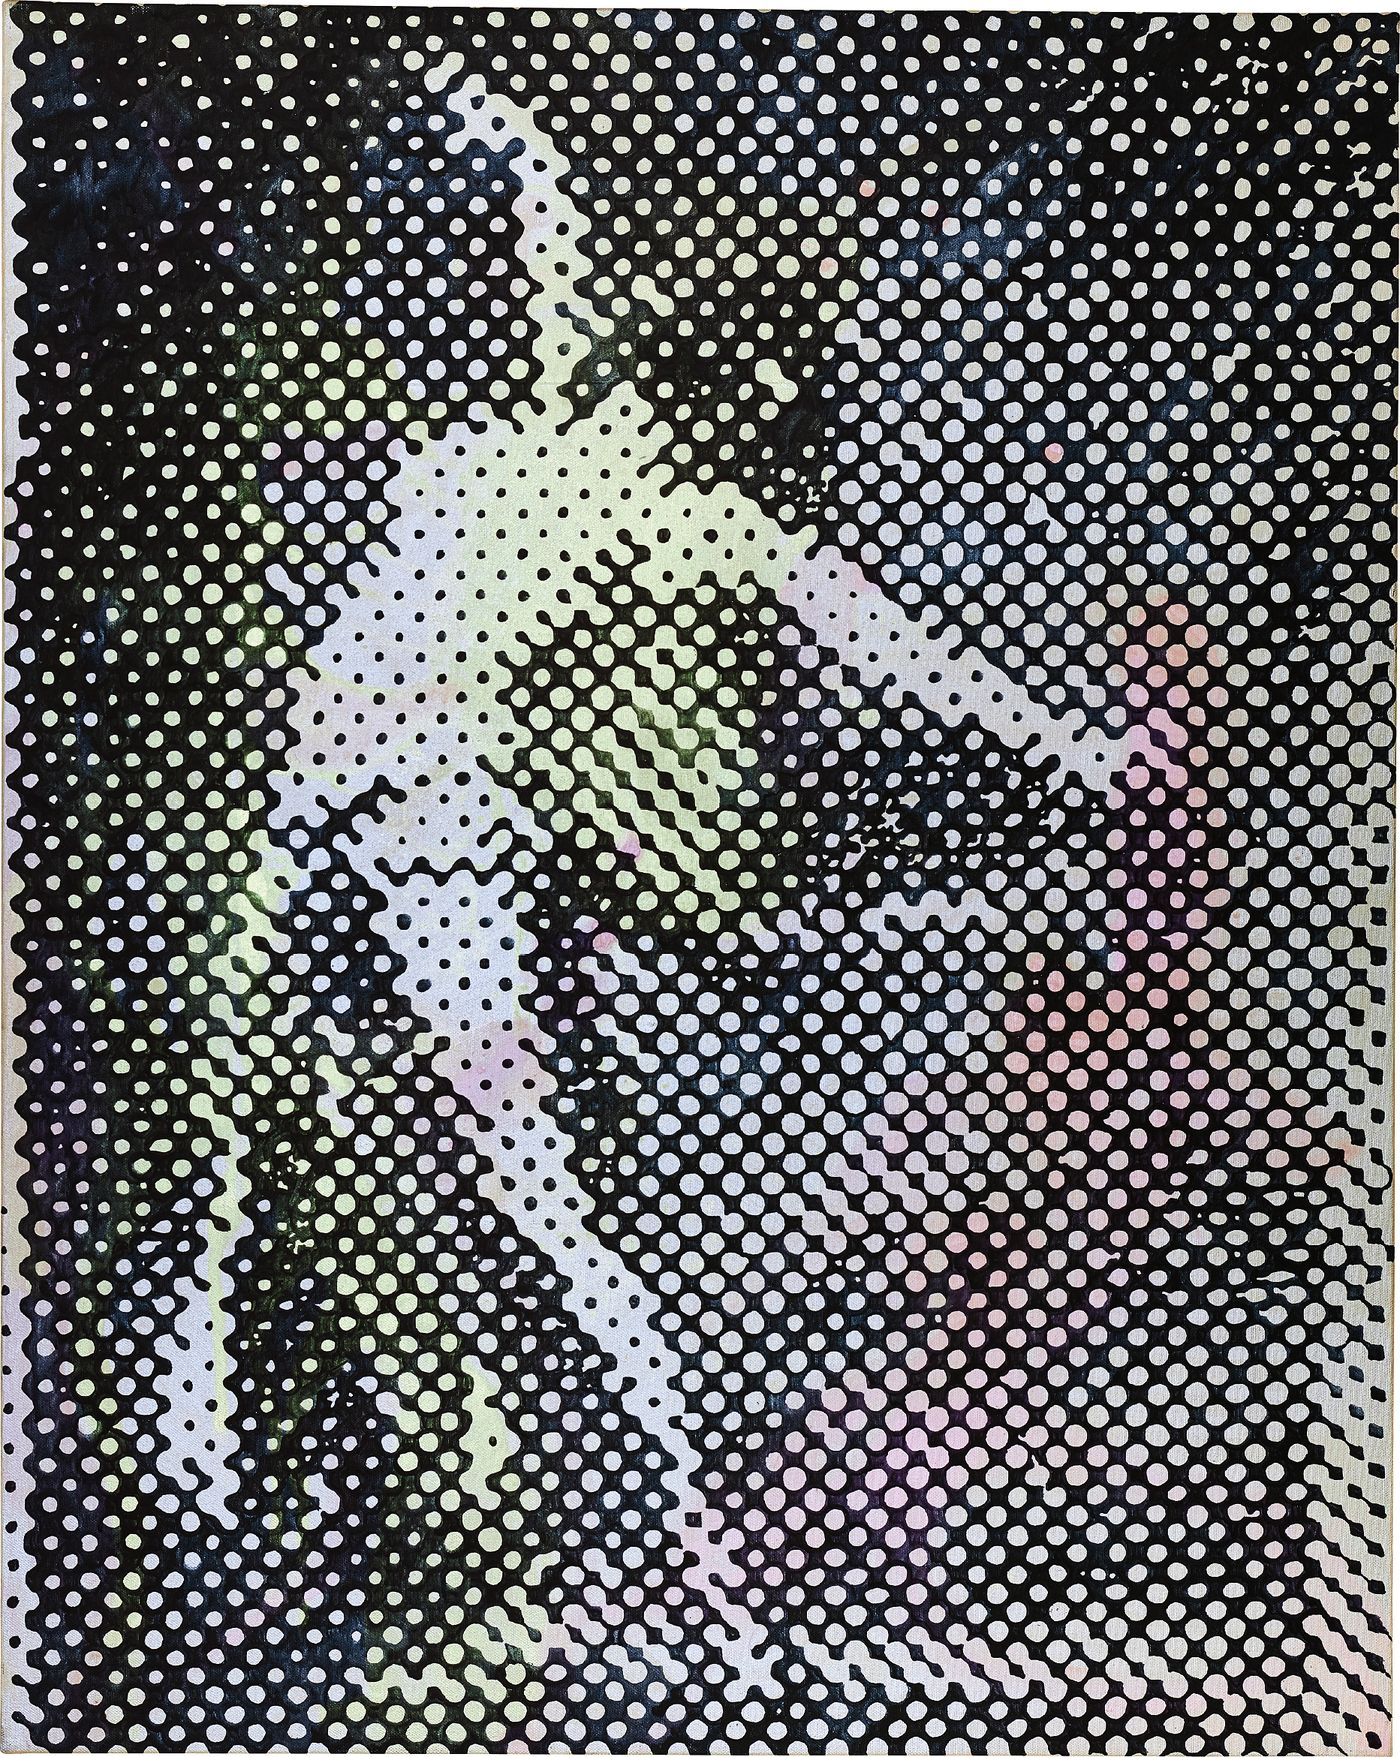 Exquisitely enchanting and visually arresting, Polke's 'Tänzerin' from 1994 offers a glimpse at the evolution of the artist's signature technique.